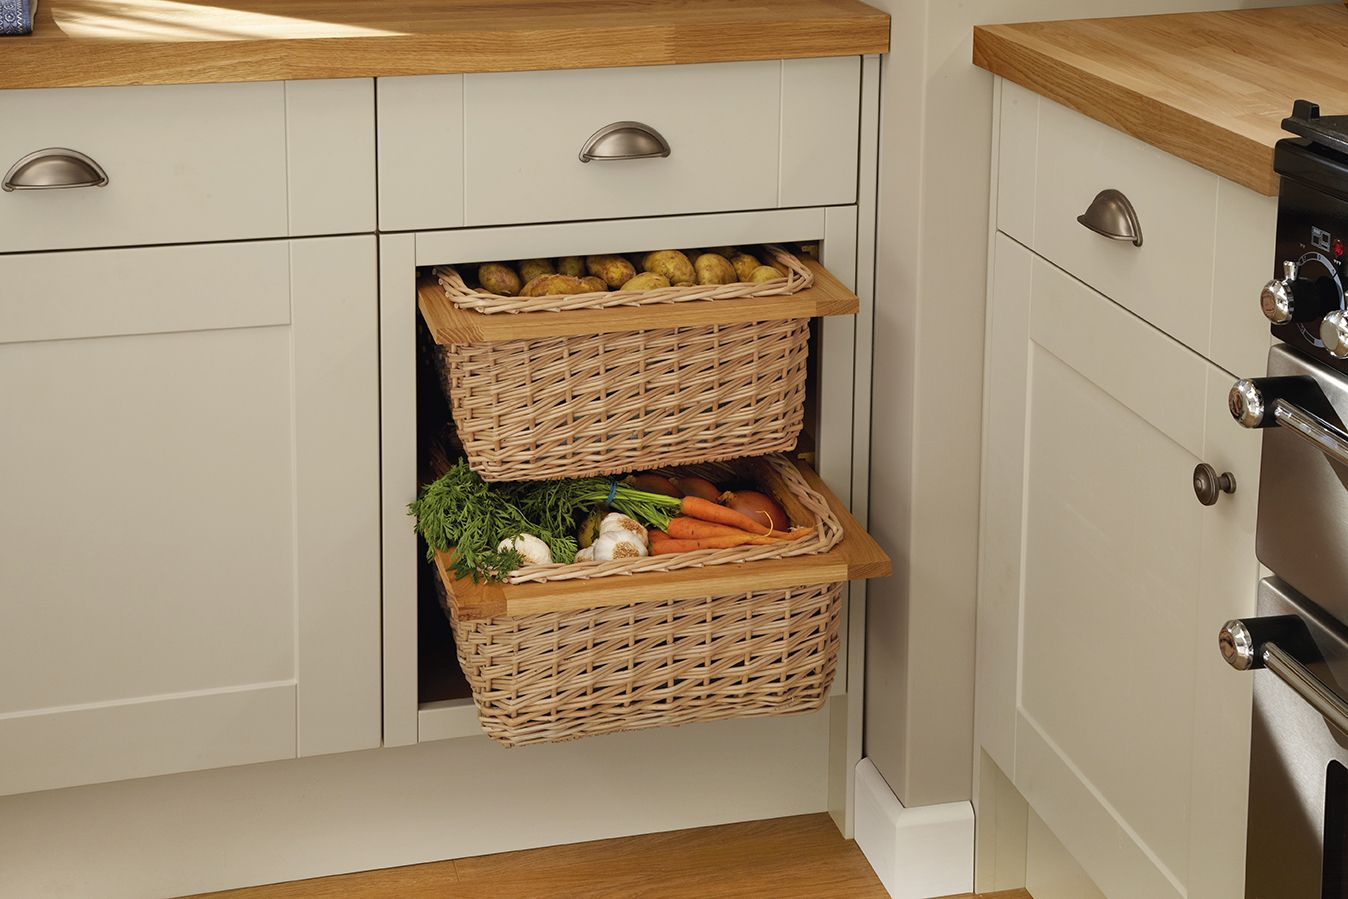 Howdens The Uk S Number 1 Trade Kitchen Supplier Shaker Style Cabinet Doors Shaker Style Cabinets Wicker Furniture